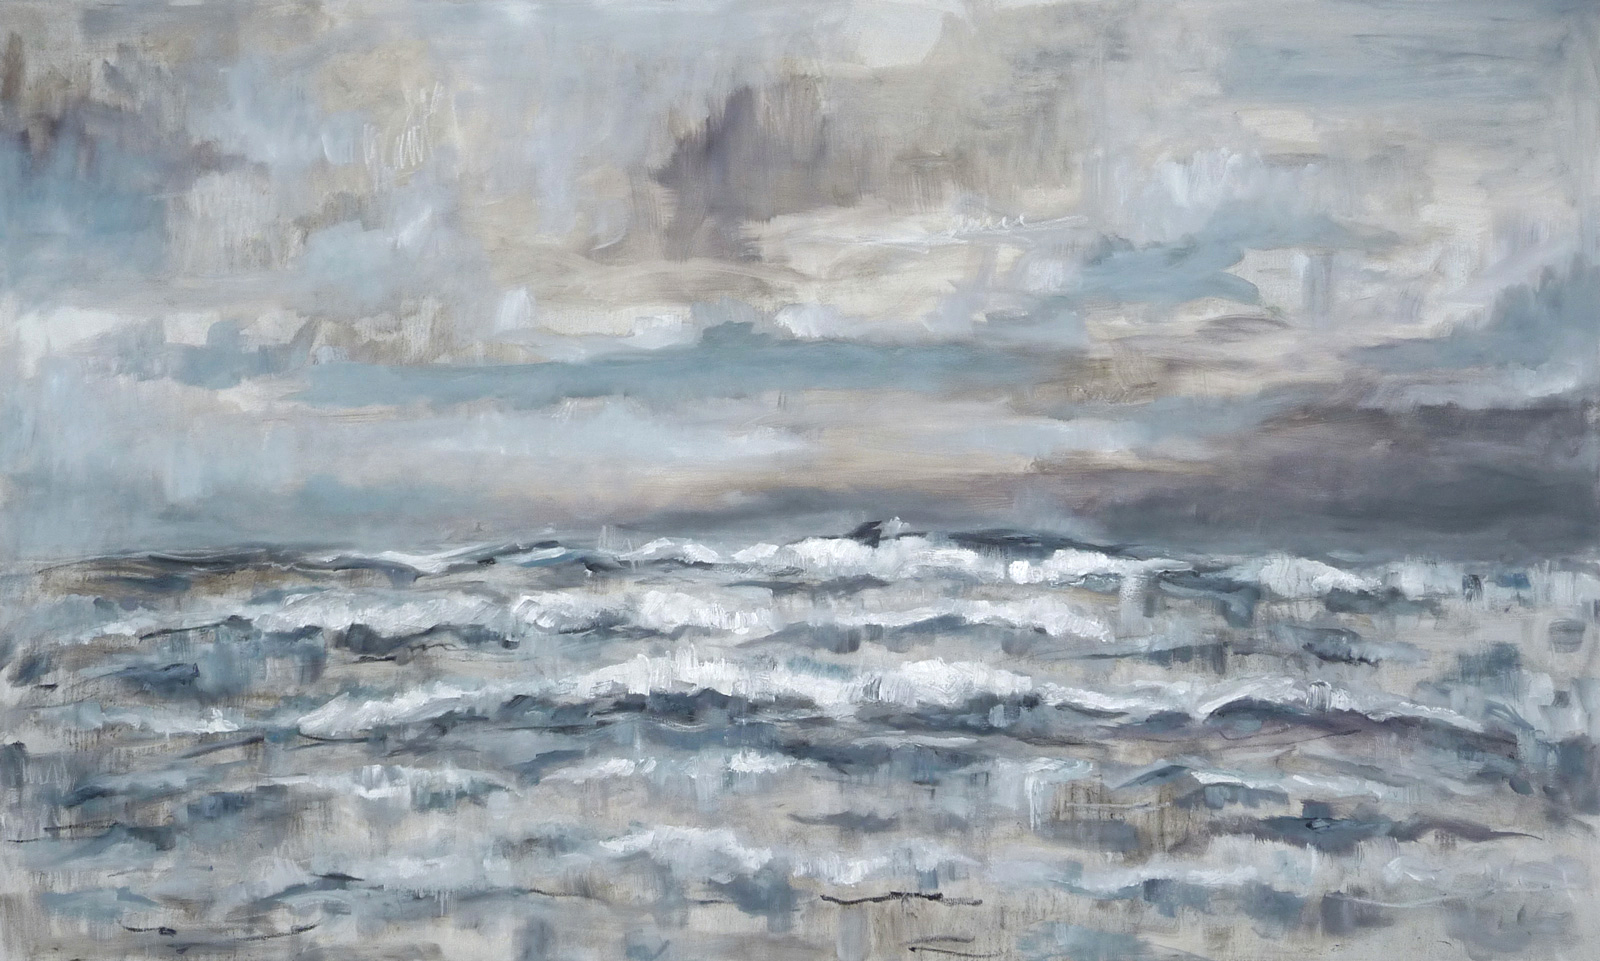 Seascape , 2017. Oil on canvas. 48x80 inches